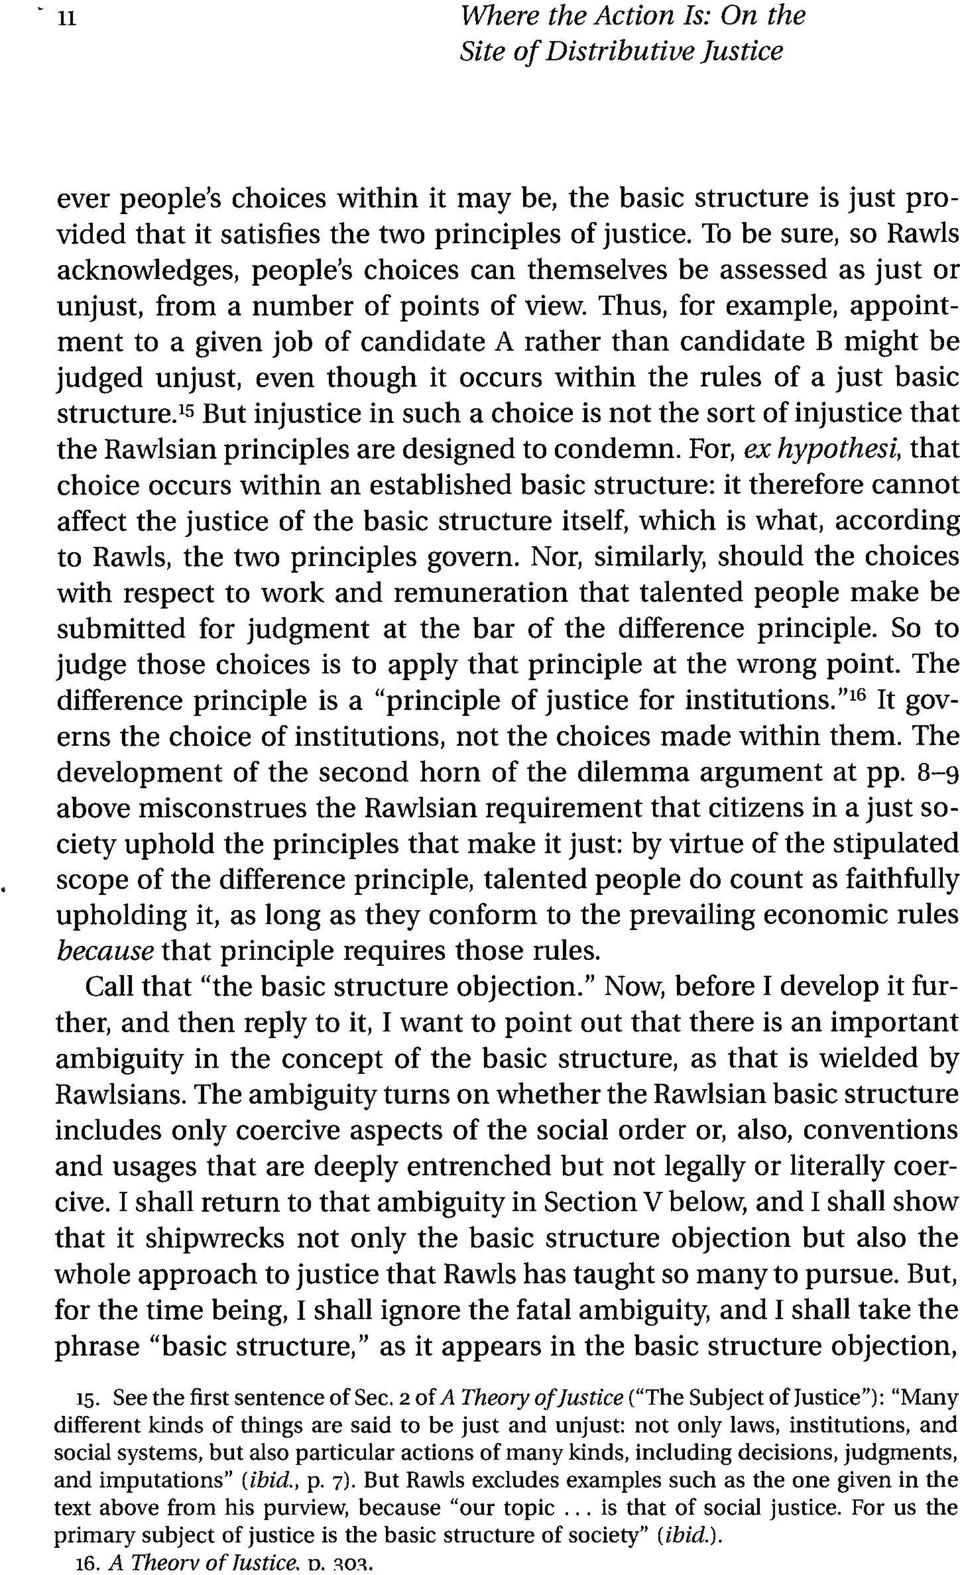 Thus, for example, appointment to a given job of candidate A rather than candidate B might be judged unjust, even though it occurs within the rules of a just basic structure.